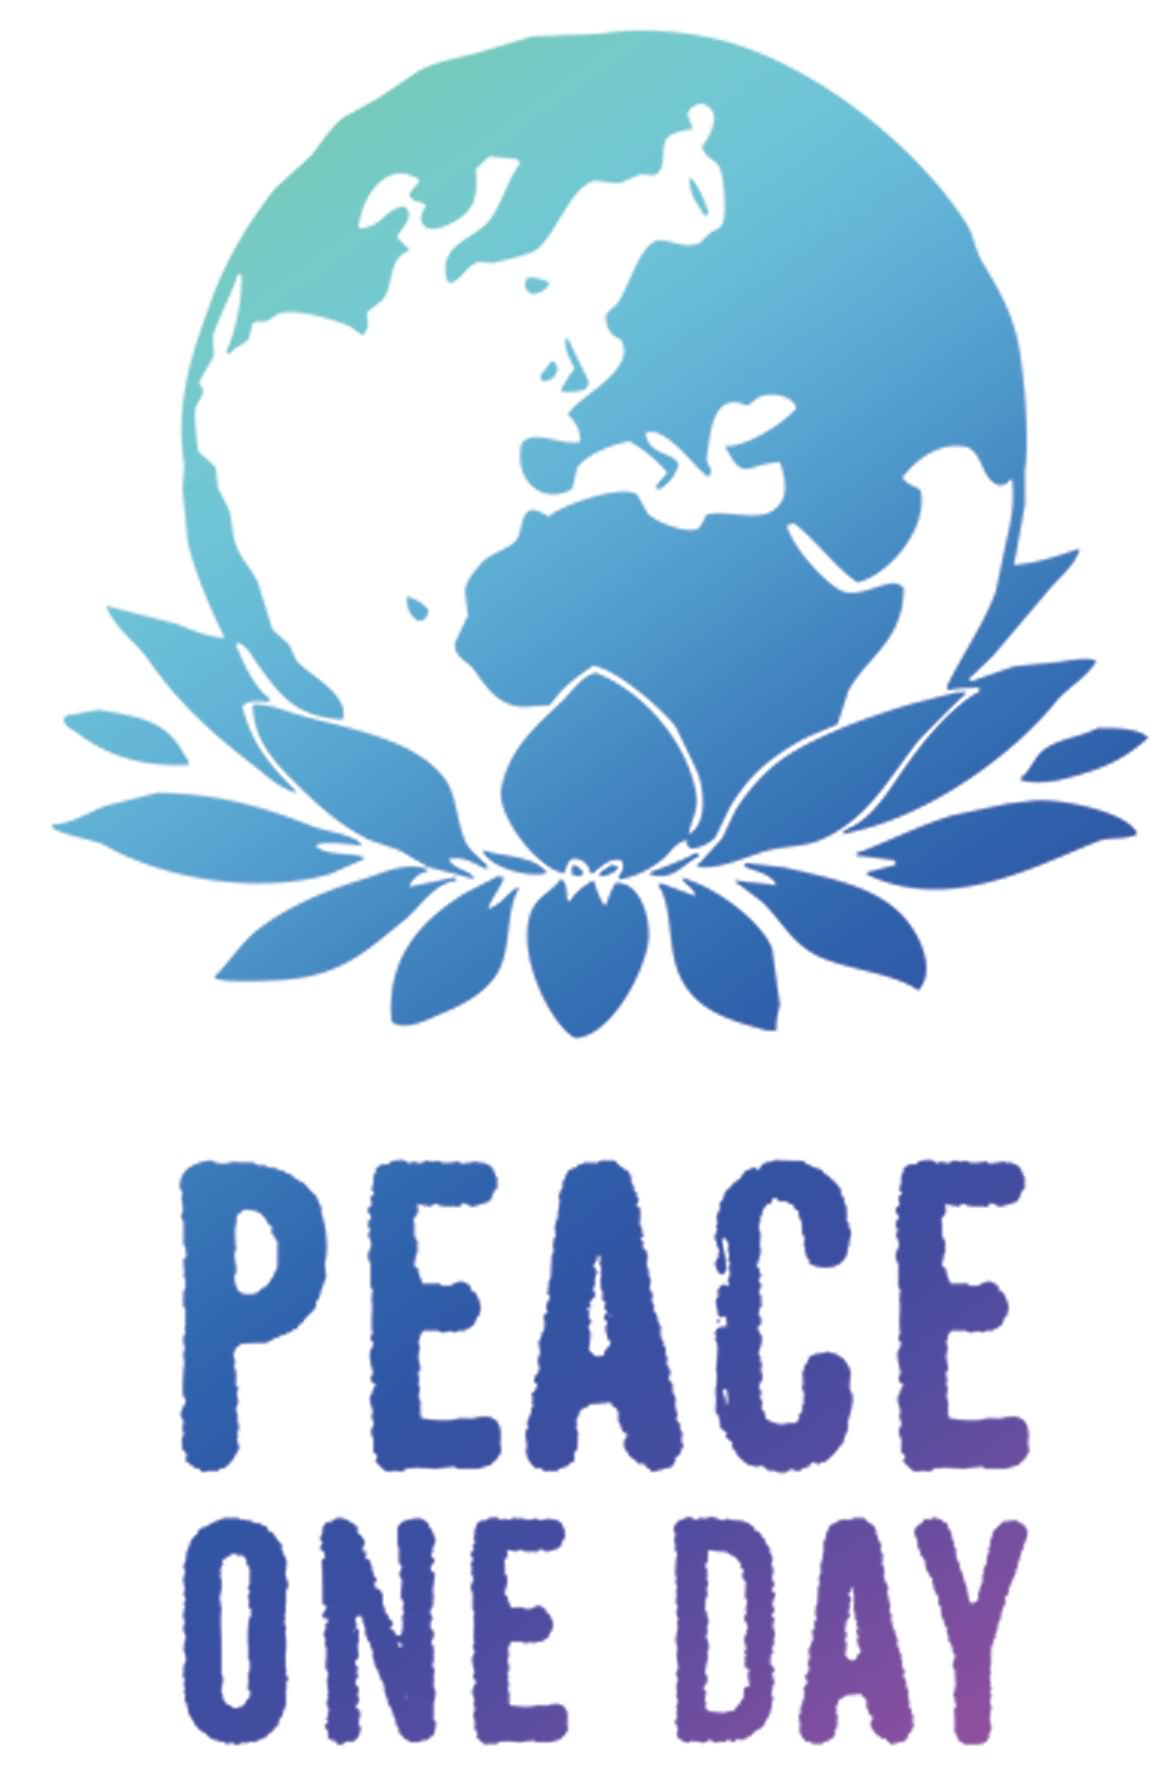 106-International Peace Day Wishes